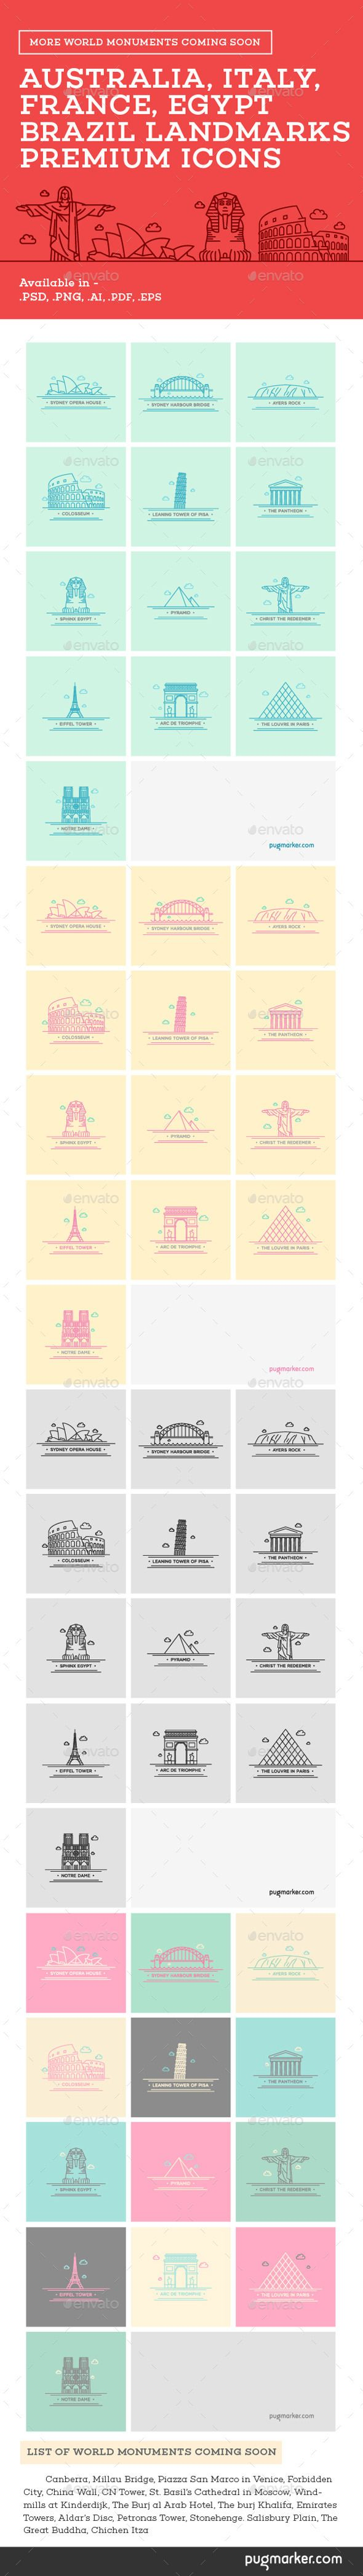 World Landmarks Icons - Vol. 1 You can download it from here http://graphicriver.net/item/world-landmarks-icons-vol-1/10655596?ref=PugMarker